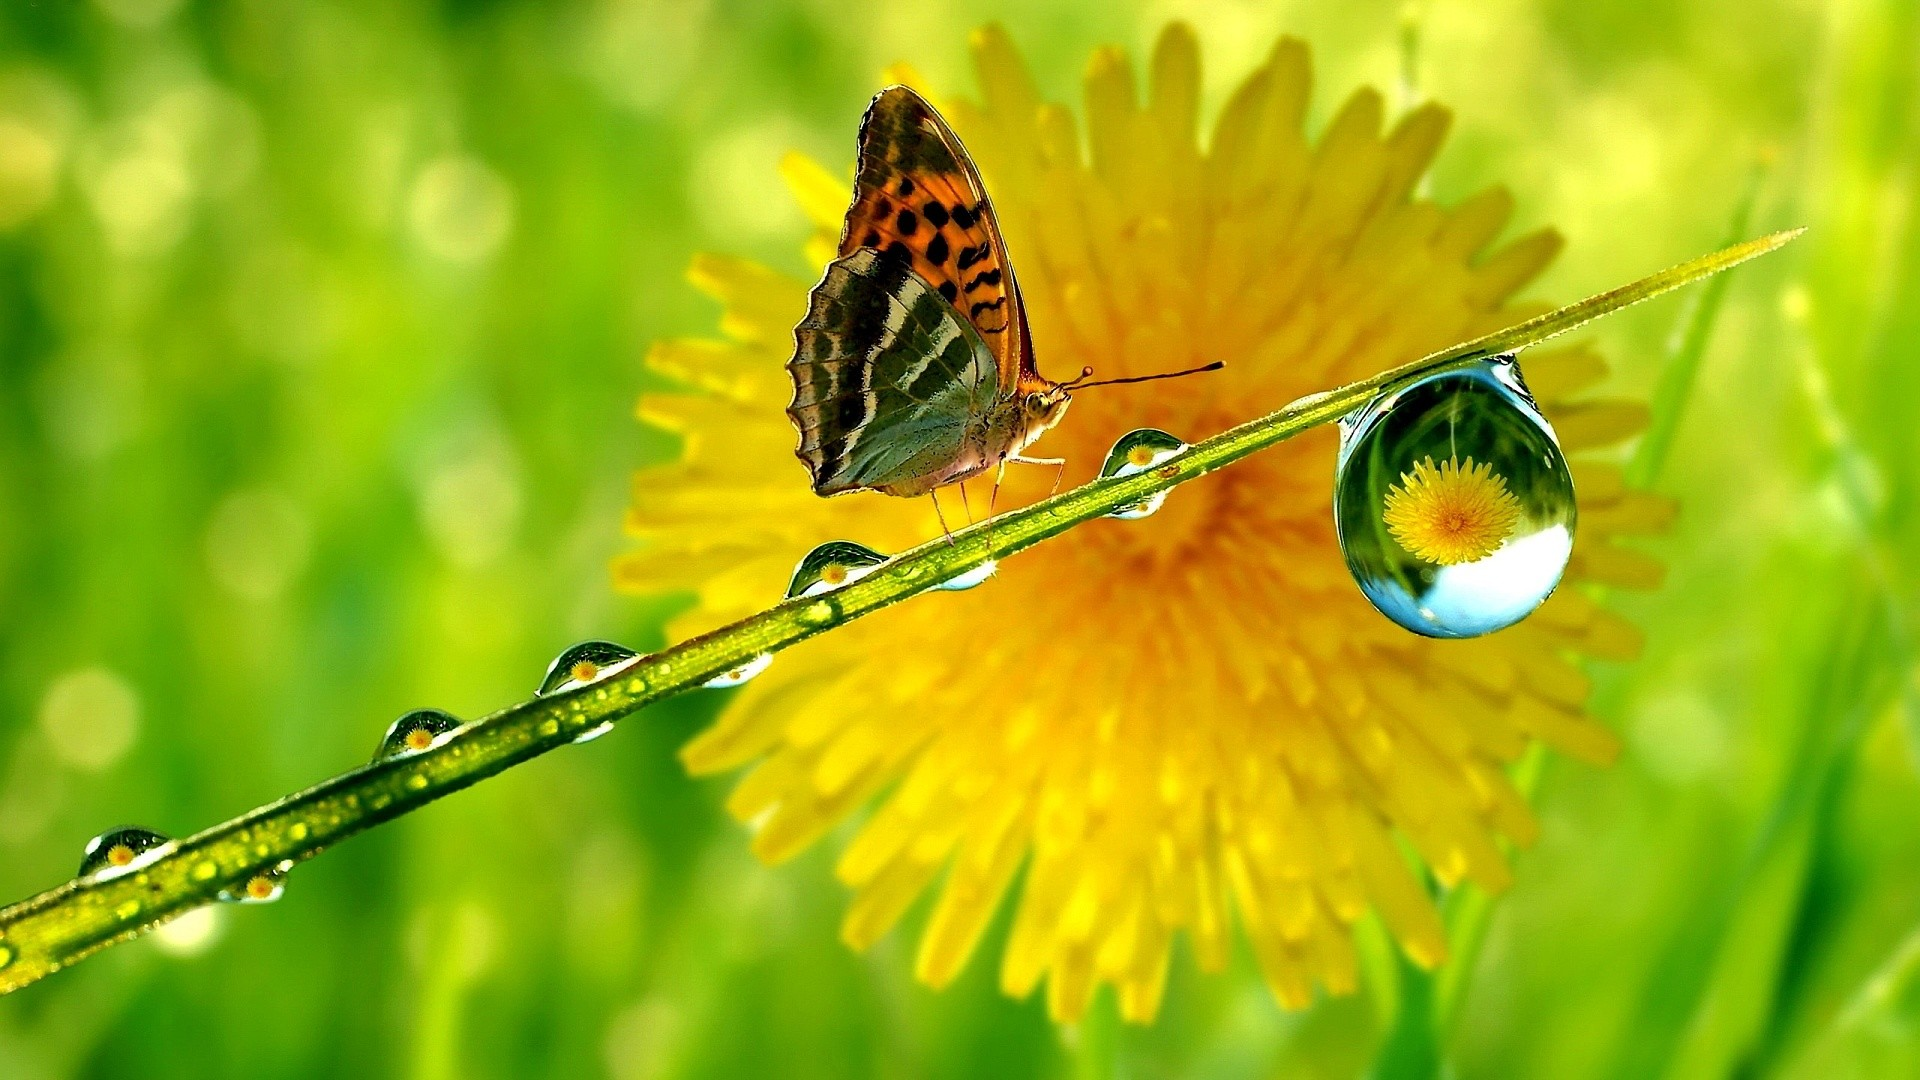 Peacock Butterfly Flower wallpapers (57 Wallpapers)